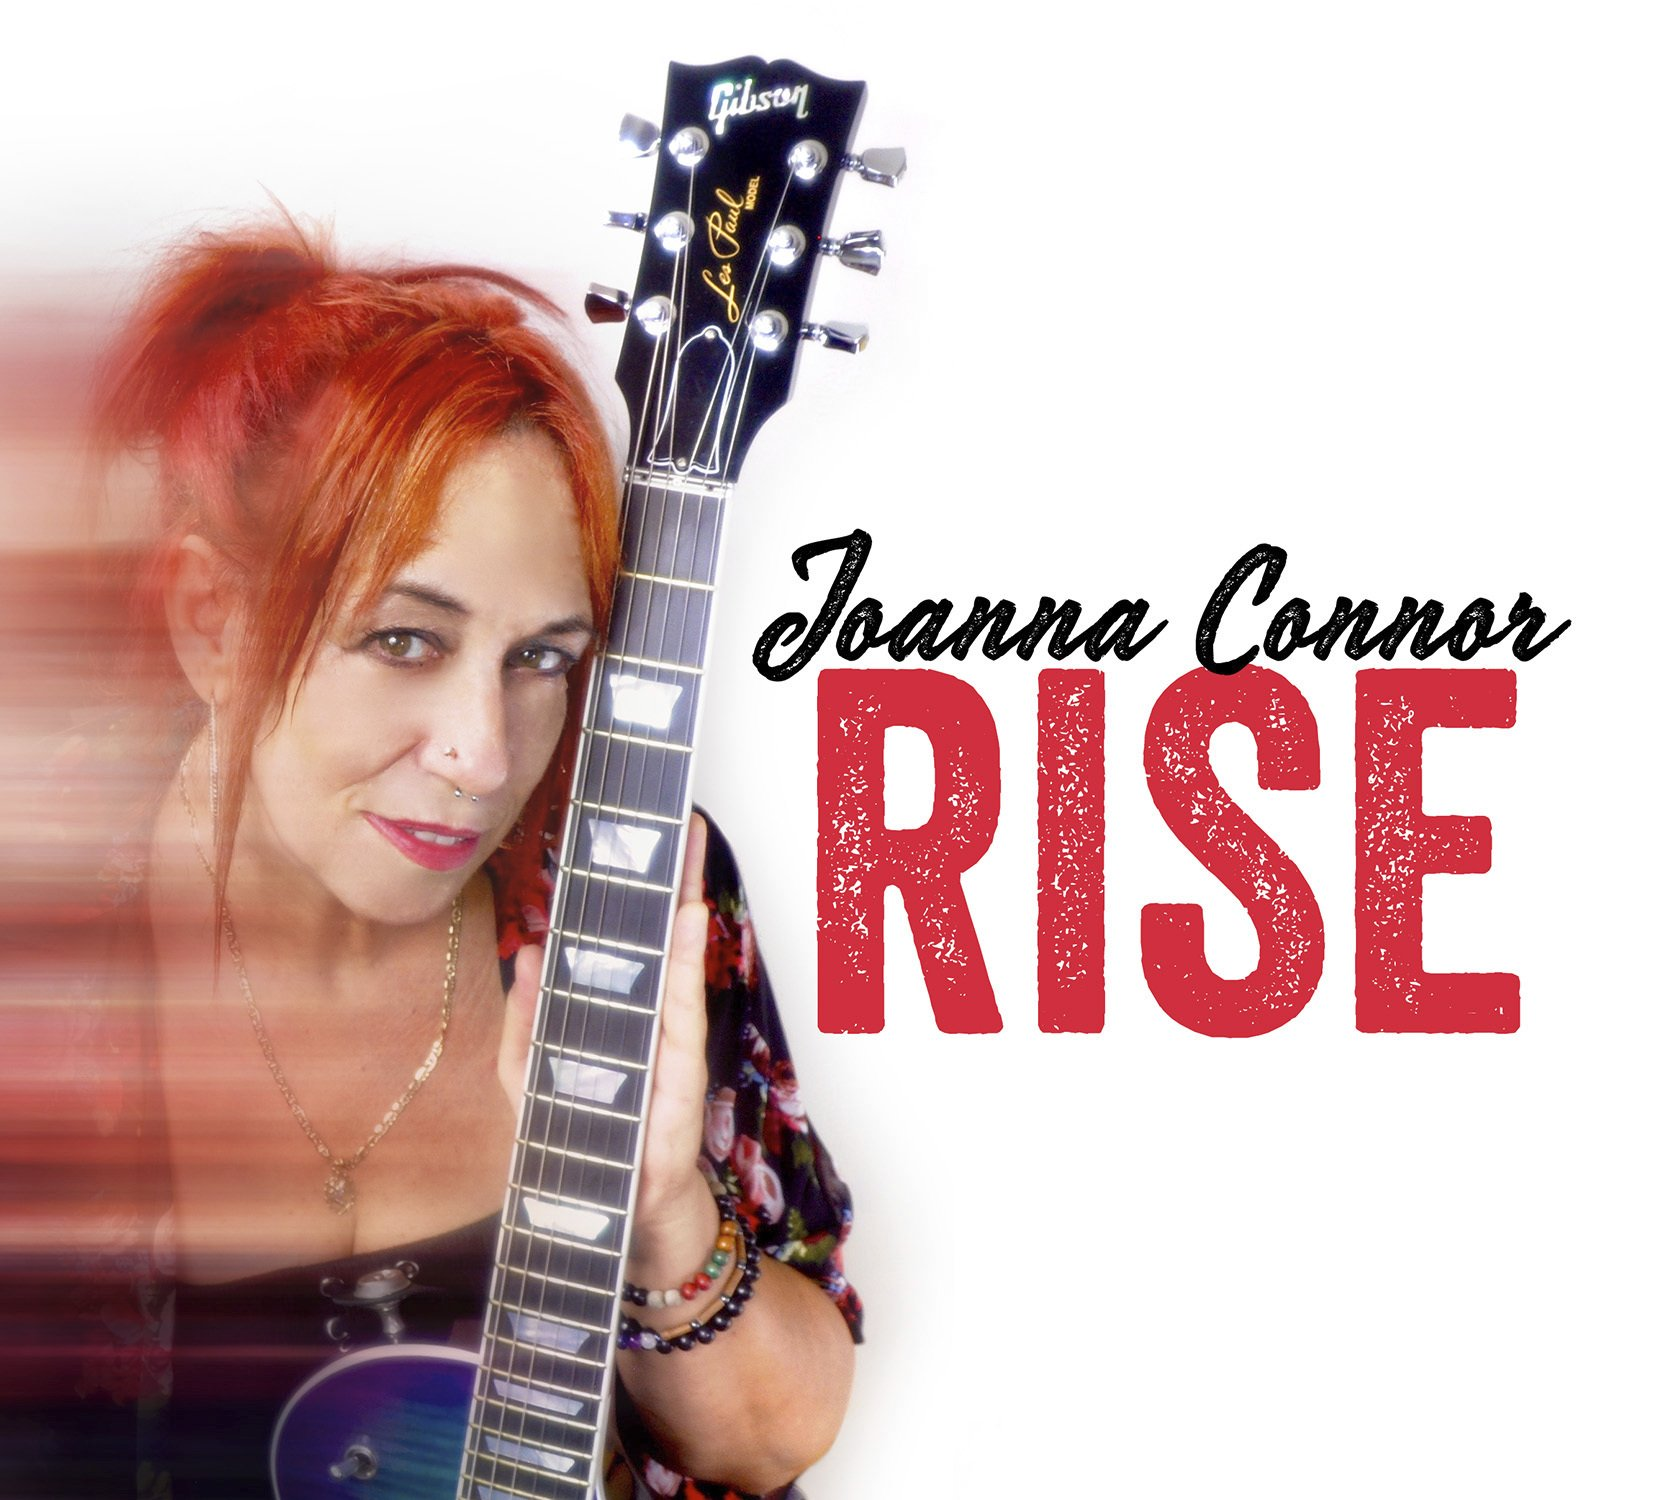 Review: Joanna Connor takes her blues guitar down new paths